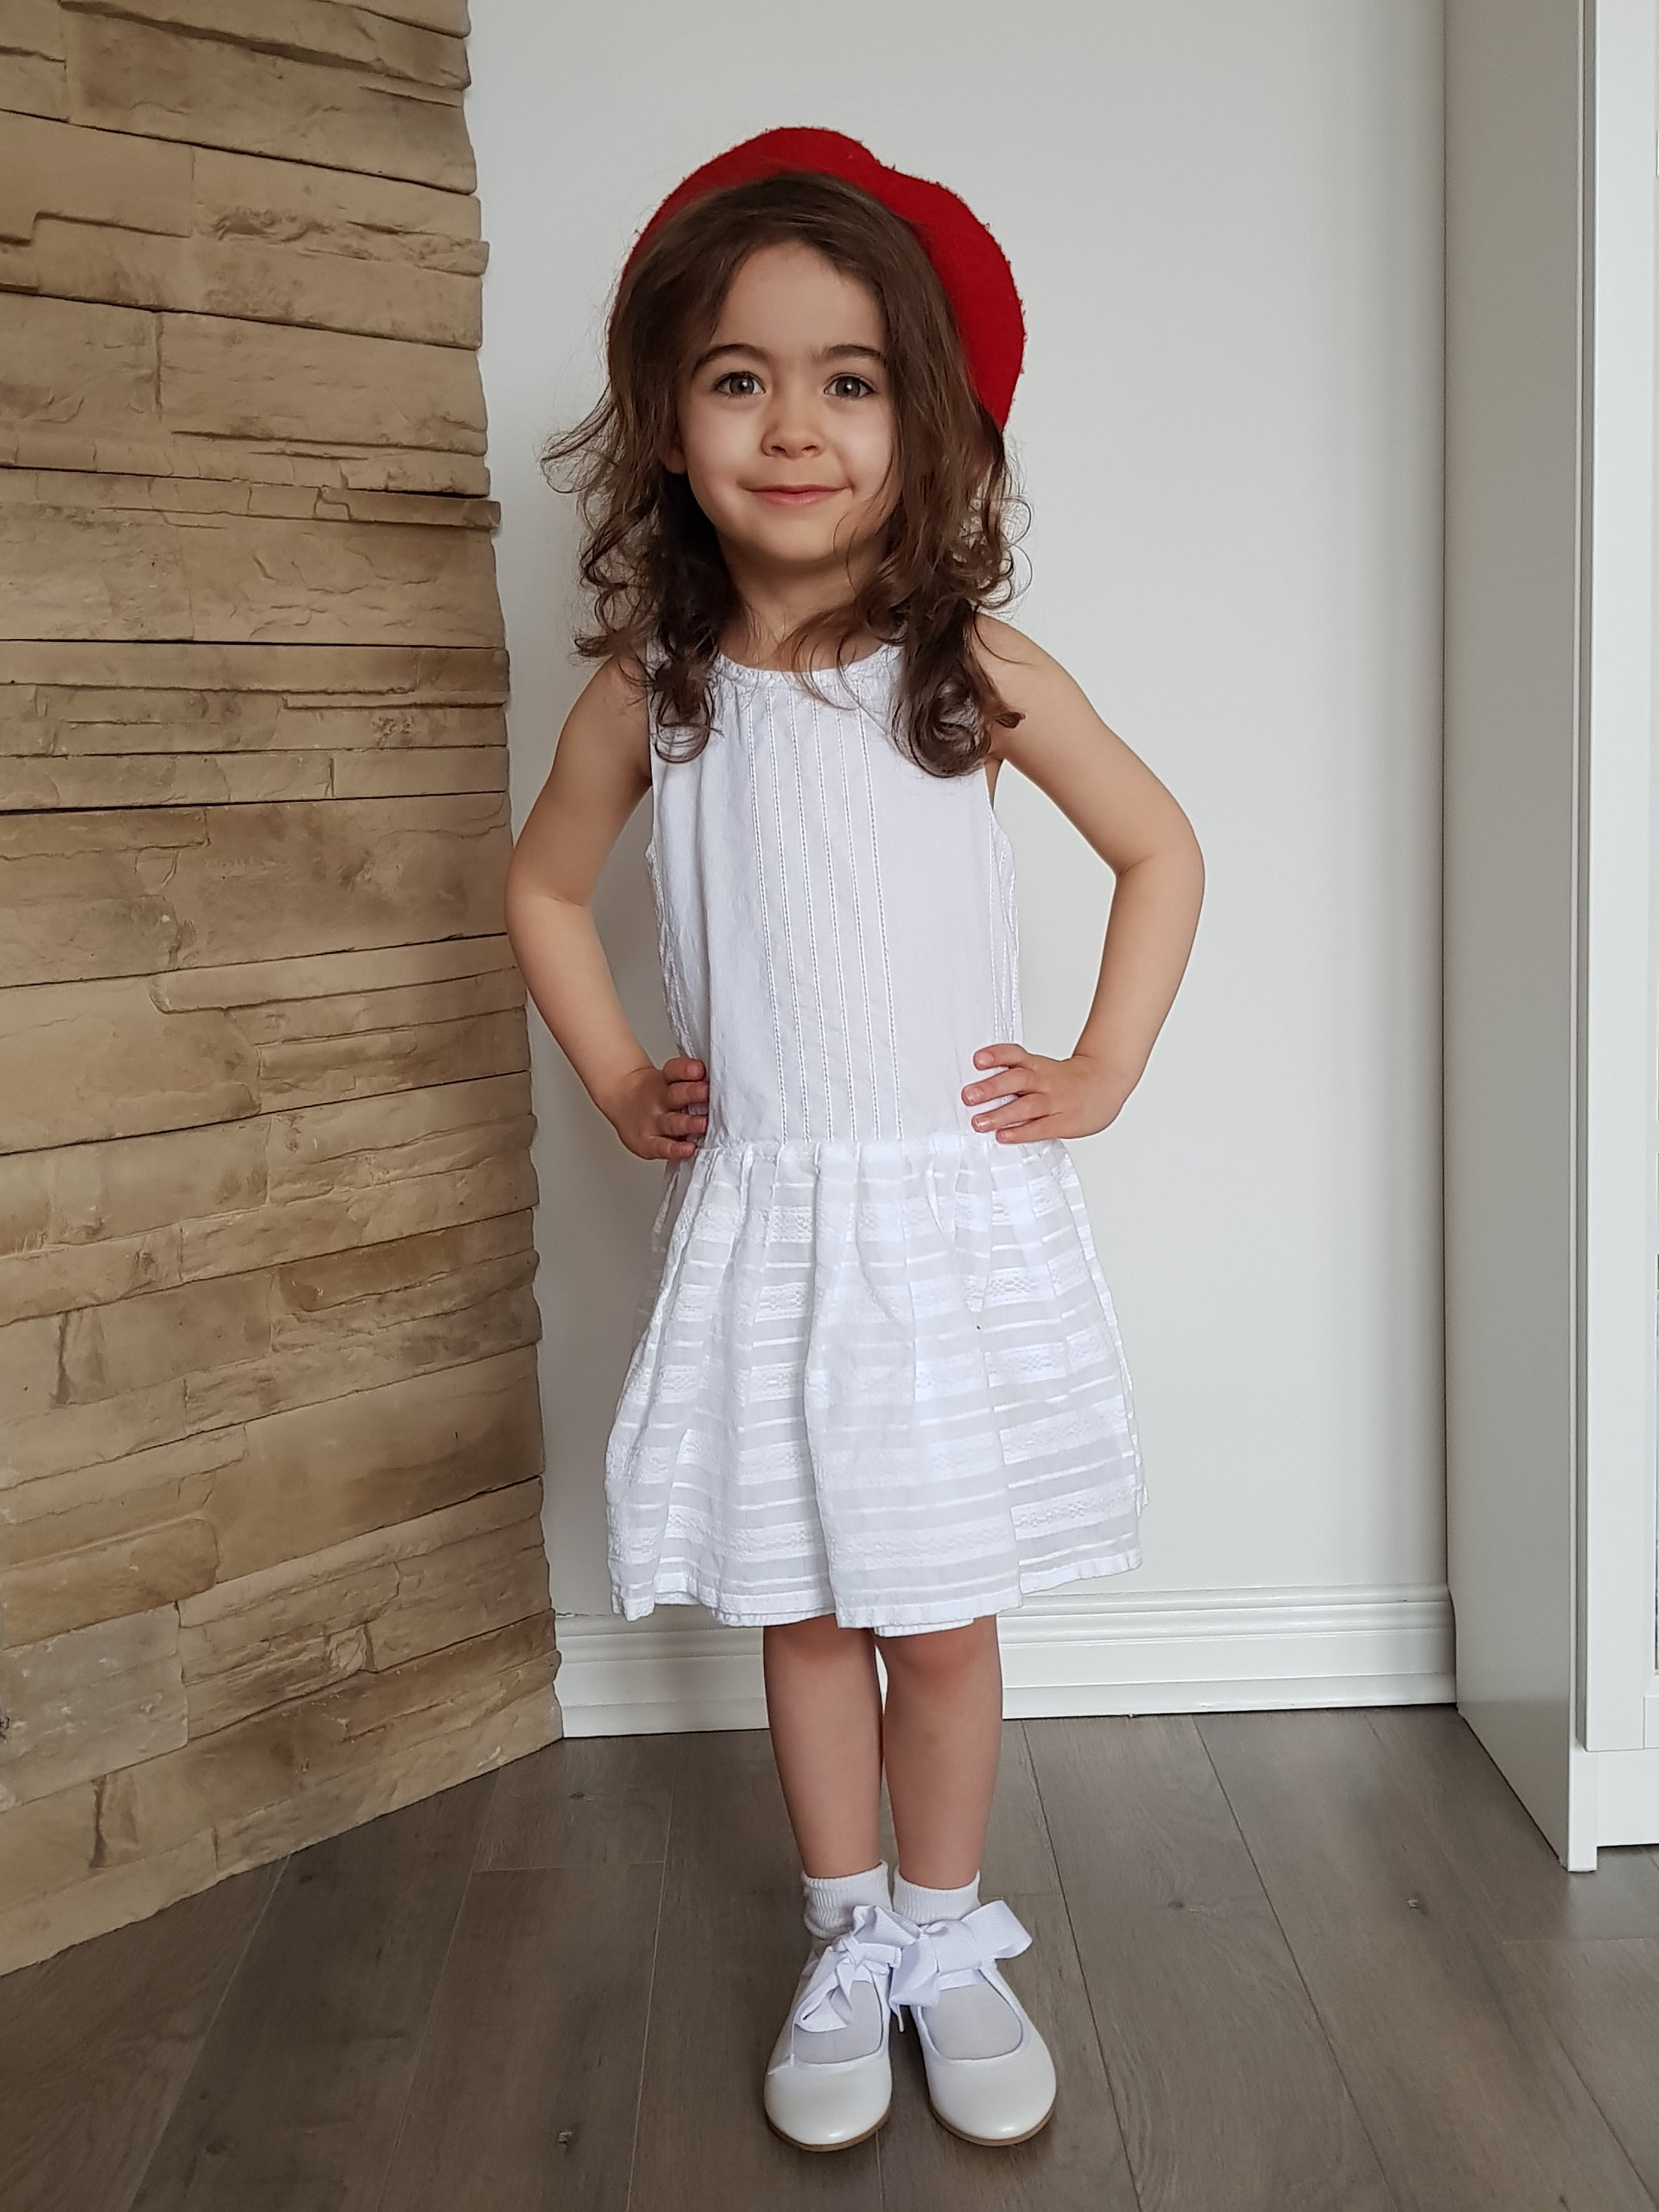 French children's fashion